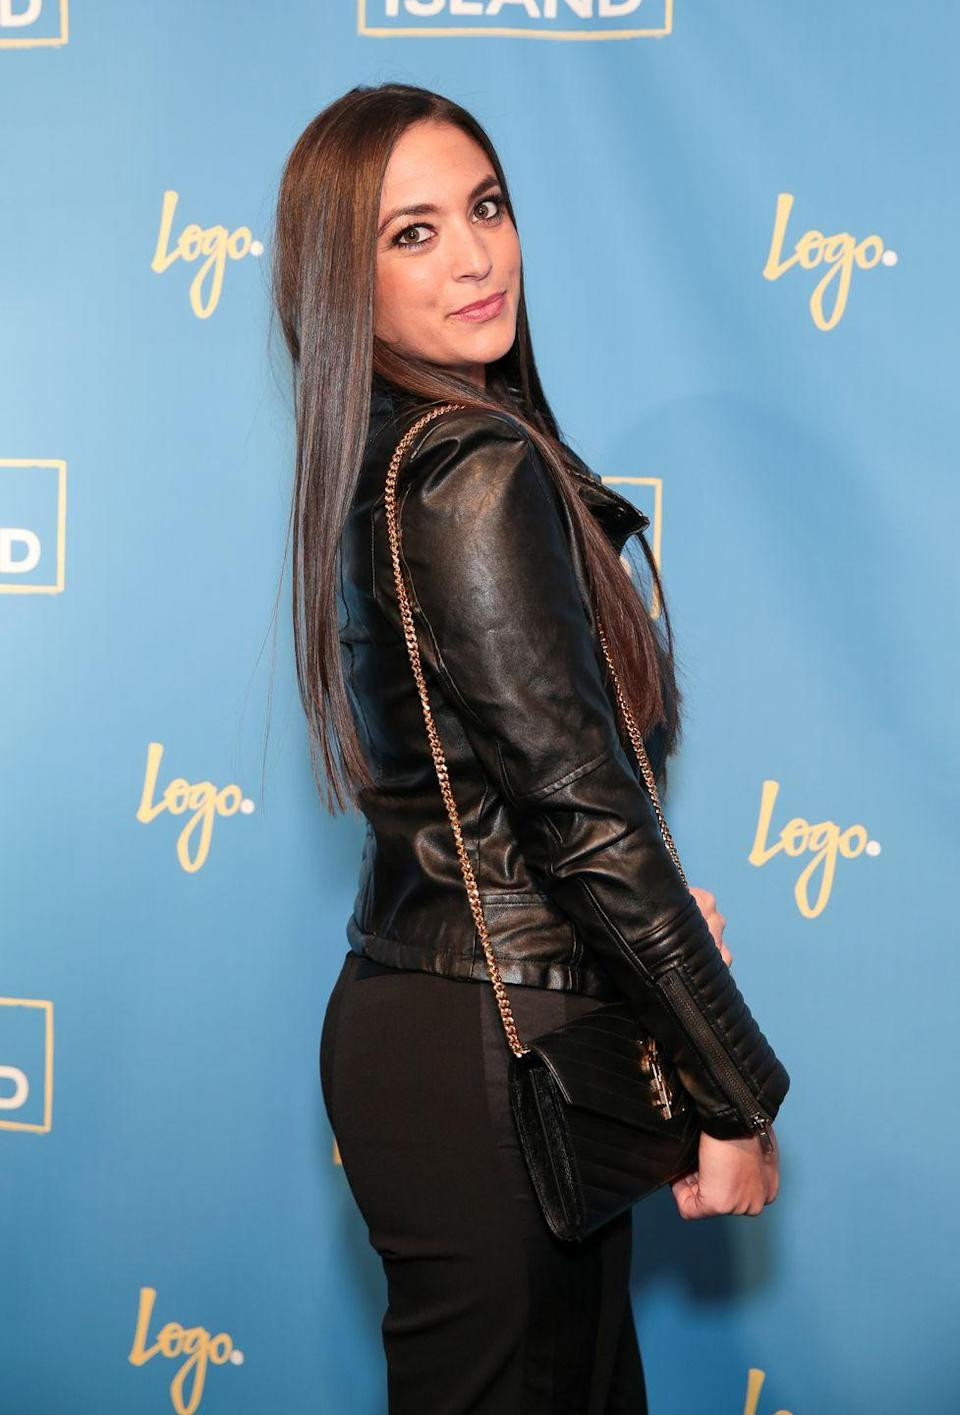 """<p>Sammi may not have appeared on <em><a href=""""https://www.cosmopolitan.com/entertainment/tv/a22629288/jersey-shore-family-vacation-season-2-trailer/"""" rel=""""nofollow noopener"""" target=""""_blank"""" data-ylk=""""slk:Jersey Shore Family Vacation"""" class=""""link rapid-noclick-resp"""">Jersey Shore Family Vacation</a> </em>along with the rest of the cast, but she's doing just fine financially. <a href=""""https://www.celebritynetworth.com/richest-celebrities/sammi-giancola-net-worth/"""" rel=""""nofollow noopener"""" target=""""_blank"""" data-ylk=""""slk:Celebrity Net Worth"""" class=""""link rapid-noclick-resp""""><em>Celebrity Net Worth</em></a> estimates she's got $4 million to her name, and <em><a href=""""https://radaronline.com/exclusives/2012/06/jersey-shore-stars-earnings-how-much-do-they-make/"""" rel=""""nofollow noopener"""" target=""""_blank"""" data-ylk=""""slk:Radar Online"""" class=""""link rapid-noclick-resp"""">Radar Online</a></em> claims she made $80,000 an episode filming <em>Jersey Shore</em>.</p><p>Nowadays, Sammi runs an online fashion boutique, <a href=""""https://sweetheartstyles.com/"""" rel=""""nofollow noopener"""" target=""""_blank"""" data-ylk=""""slk:Sweetheart Styles"""" class=""""link rapid-noclick-resp"""">Sweetheart Styles</a>, a brick-and-mortar shop in NJ itself, and has developed several different fragrances. Because who wouldn't want to smell like the shore, amirite?</p>"""